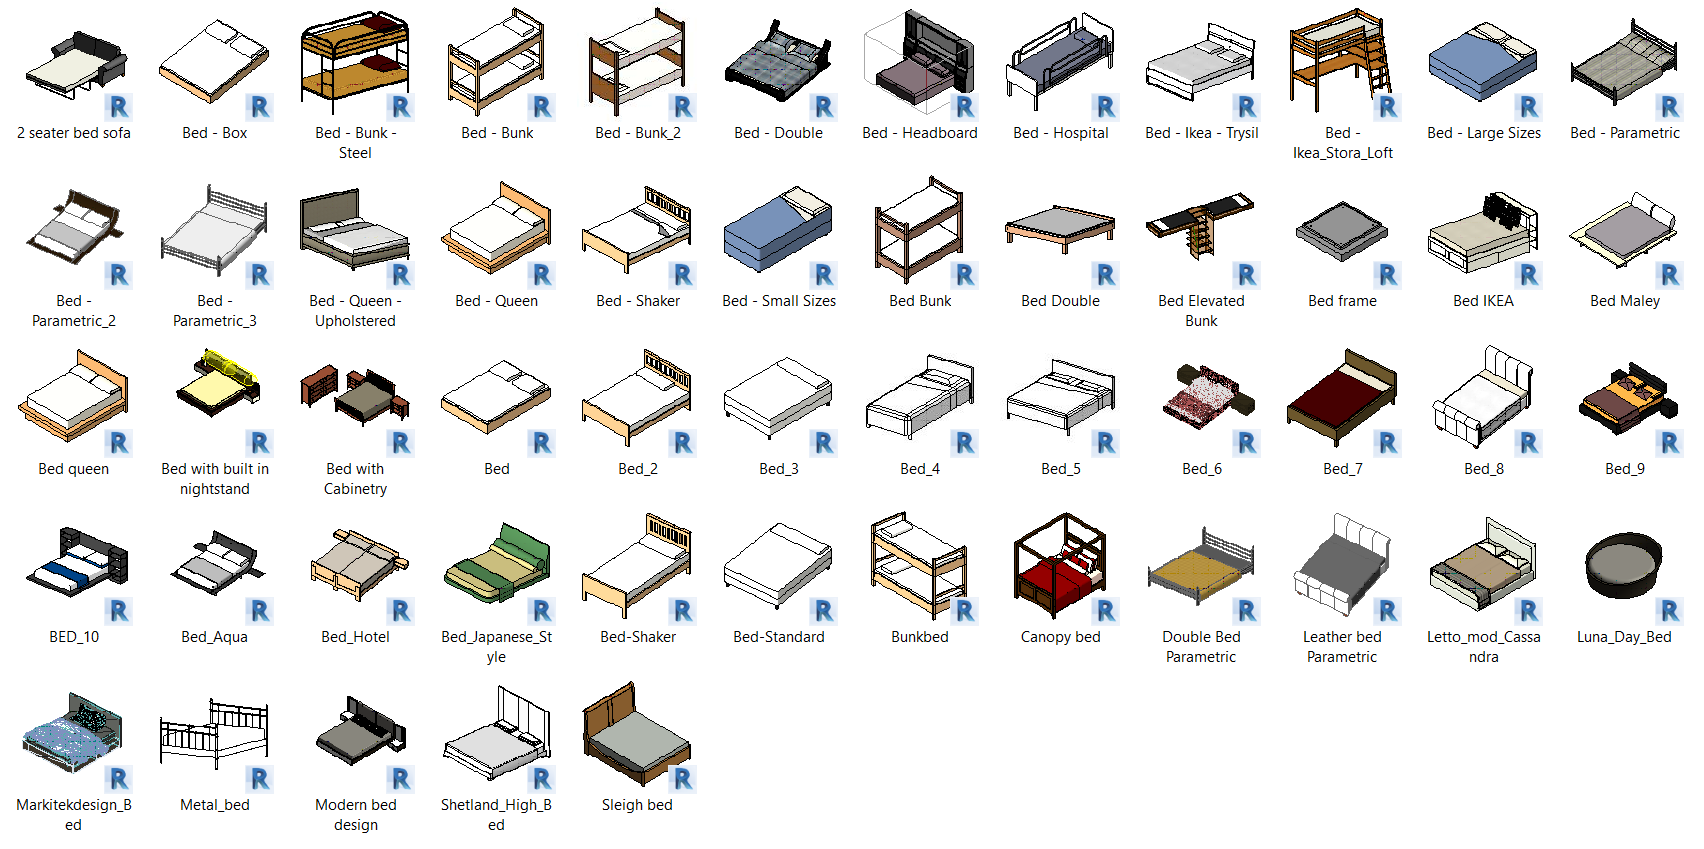 Furniture - Beds Gallery.PNG